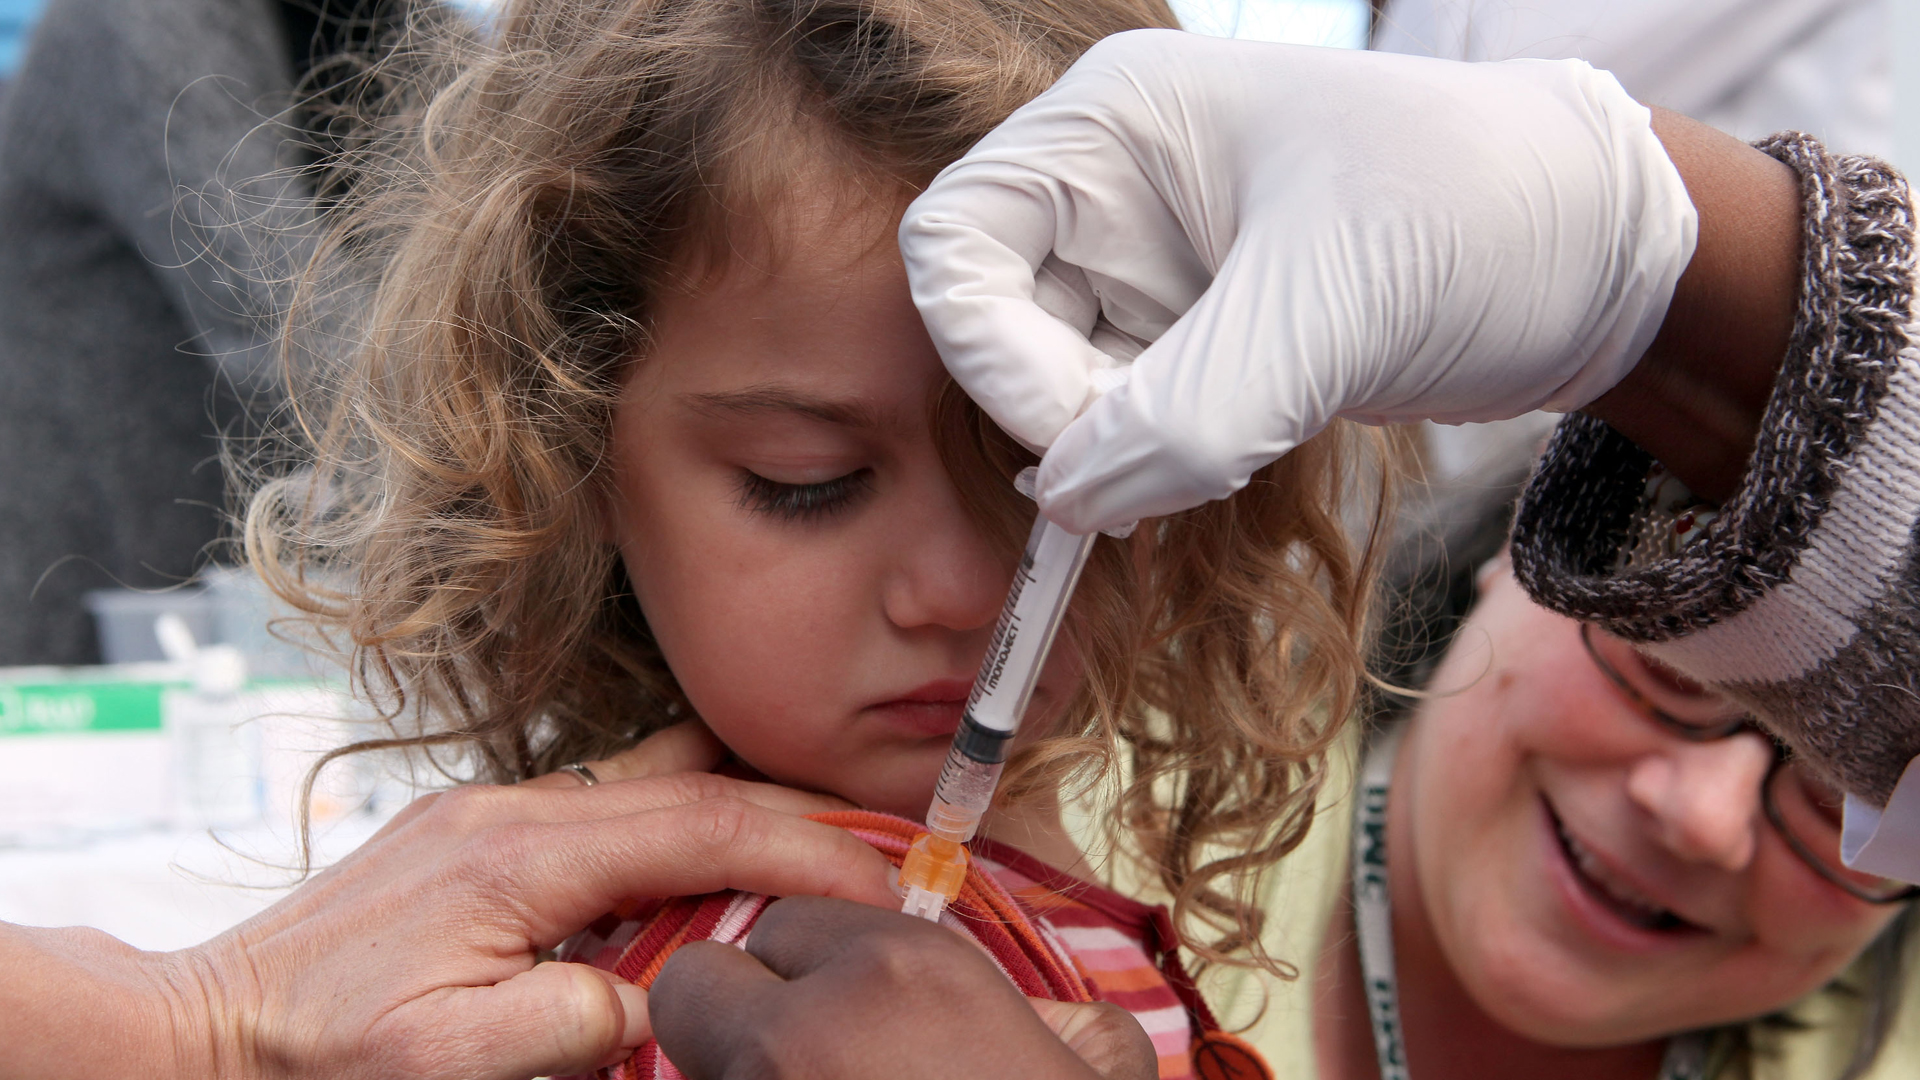 A three year-old receives an H1N1 vaccination at a medical center on Nov. 5, 2009, in San Pablo, California. (Credit: Justin Sullivan/Getty Images)